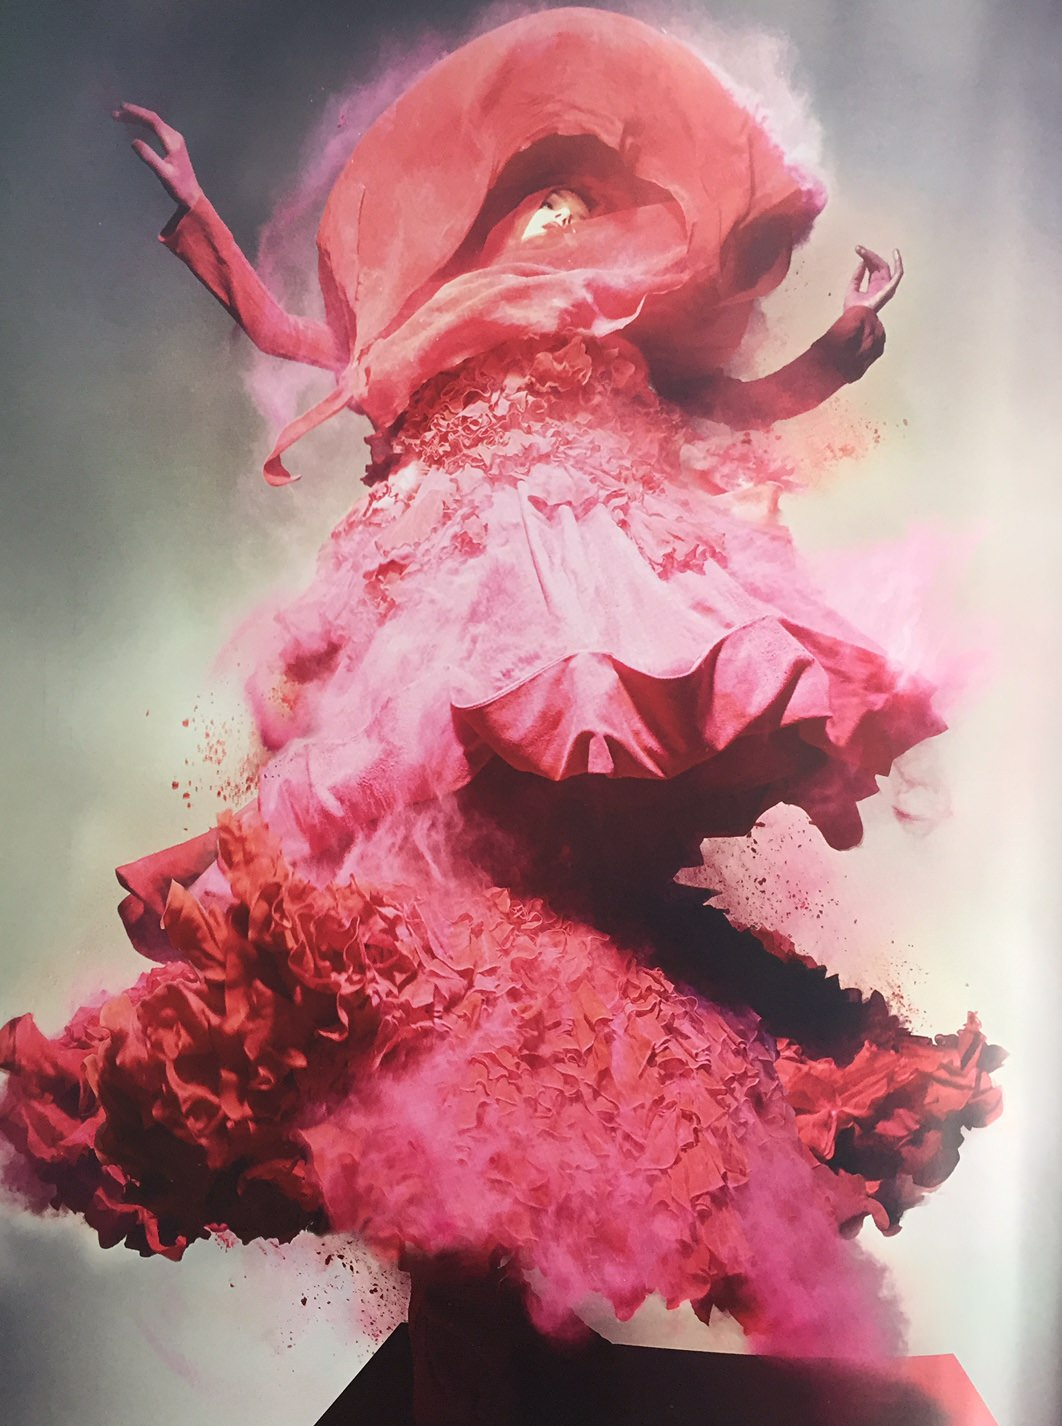 a woman who has had pink powder explode over her